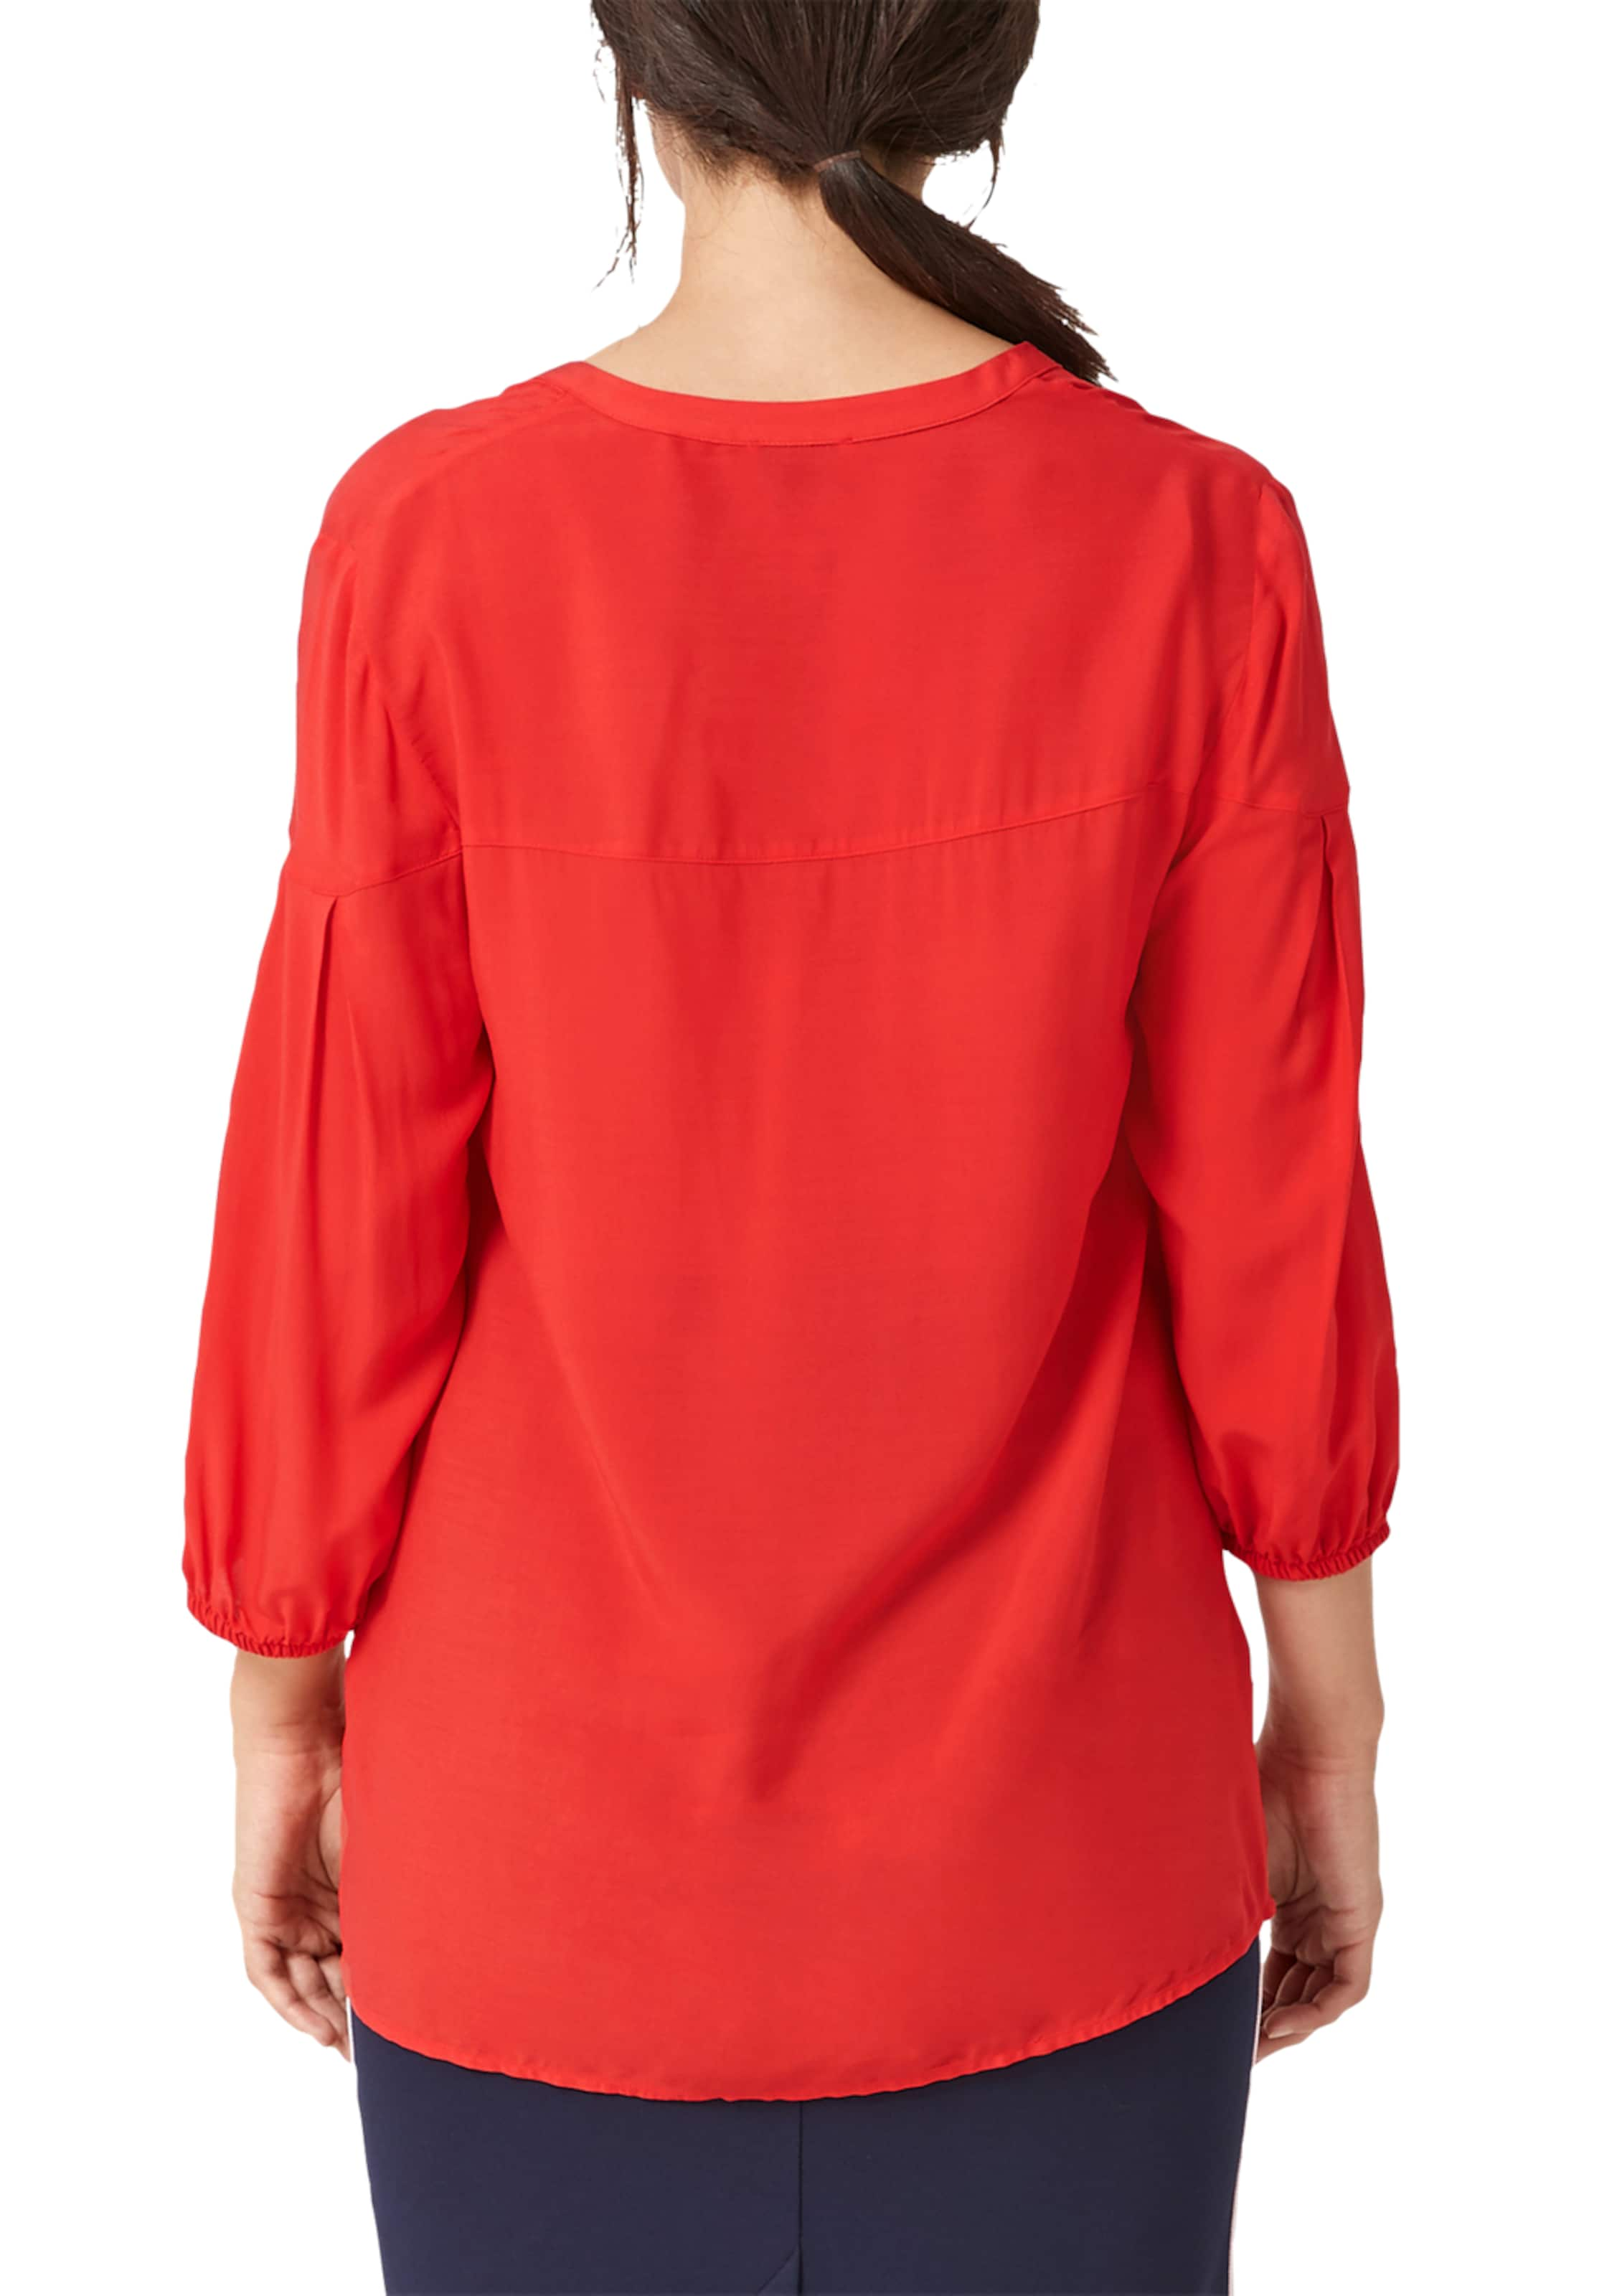 Triangle In Bluse Bluse In Hellrot Hellrot Triangle Triangle rdCWoBex